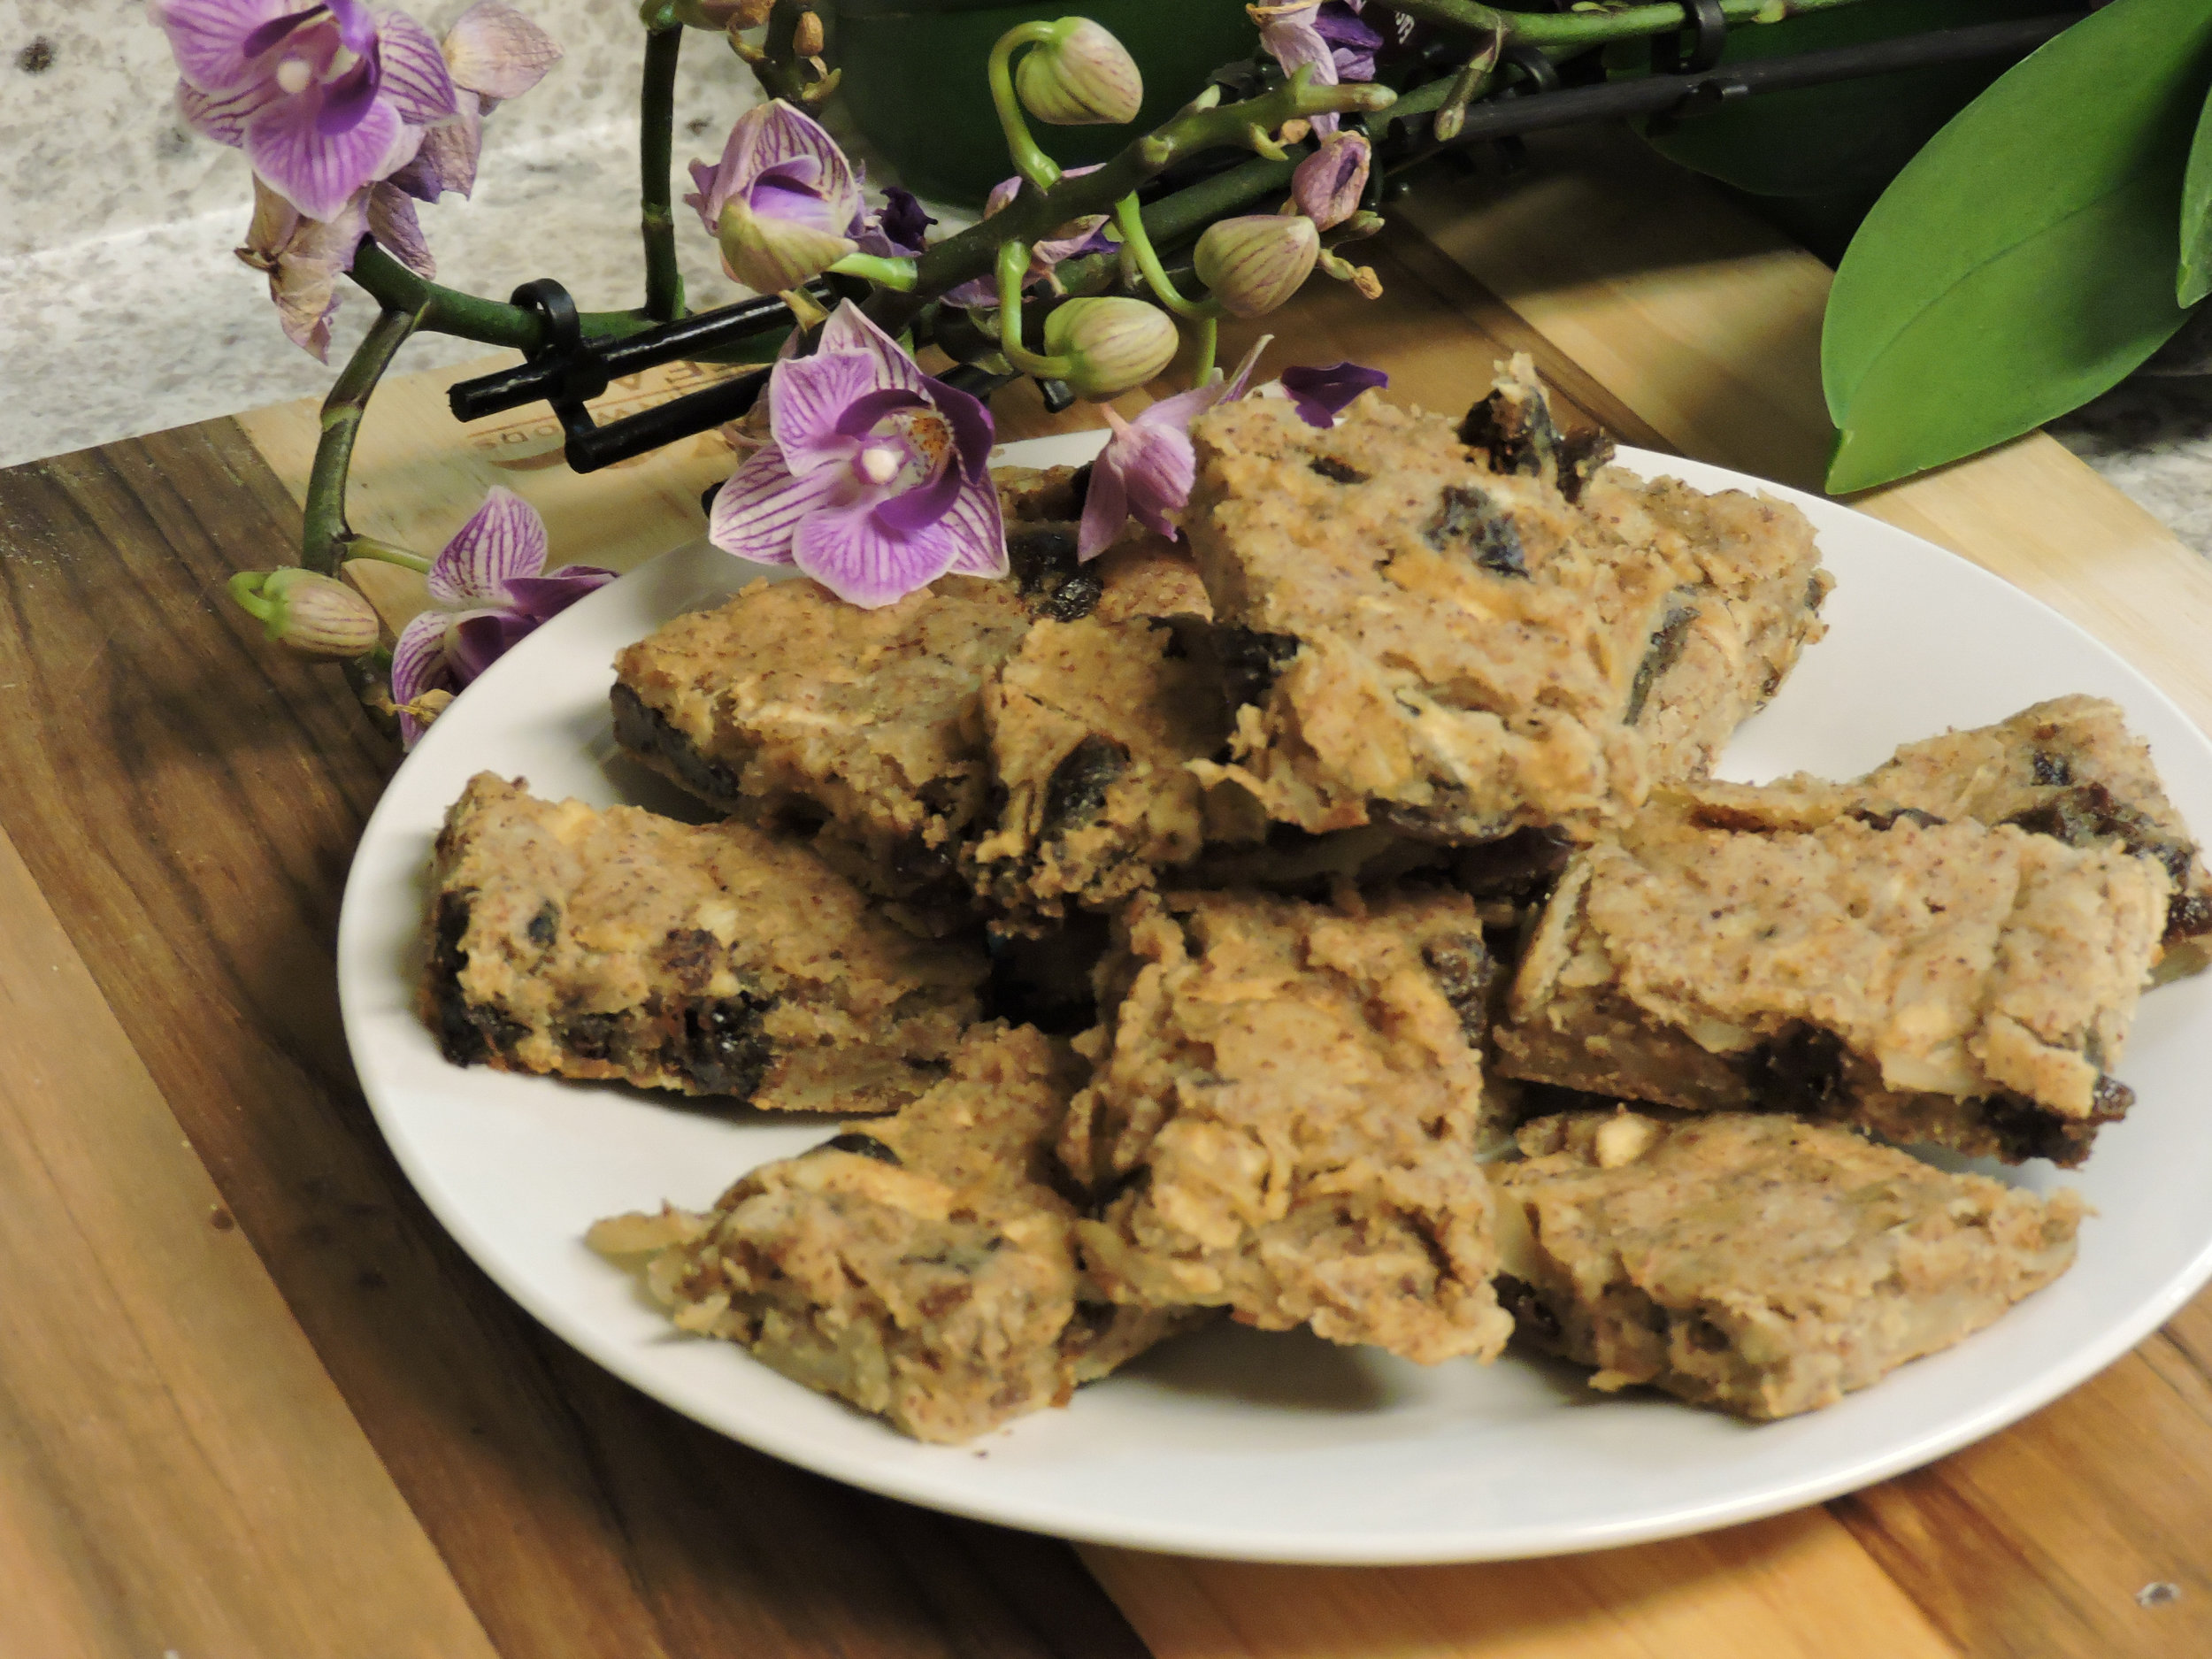 - The recipe is simple and you can add fresh and dried fruits, as well as nuts.